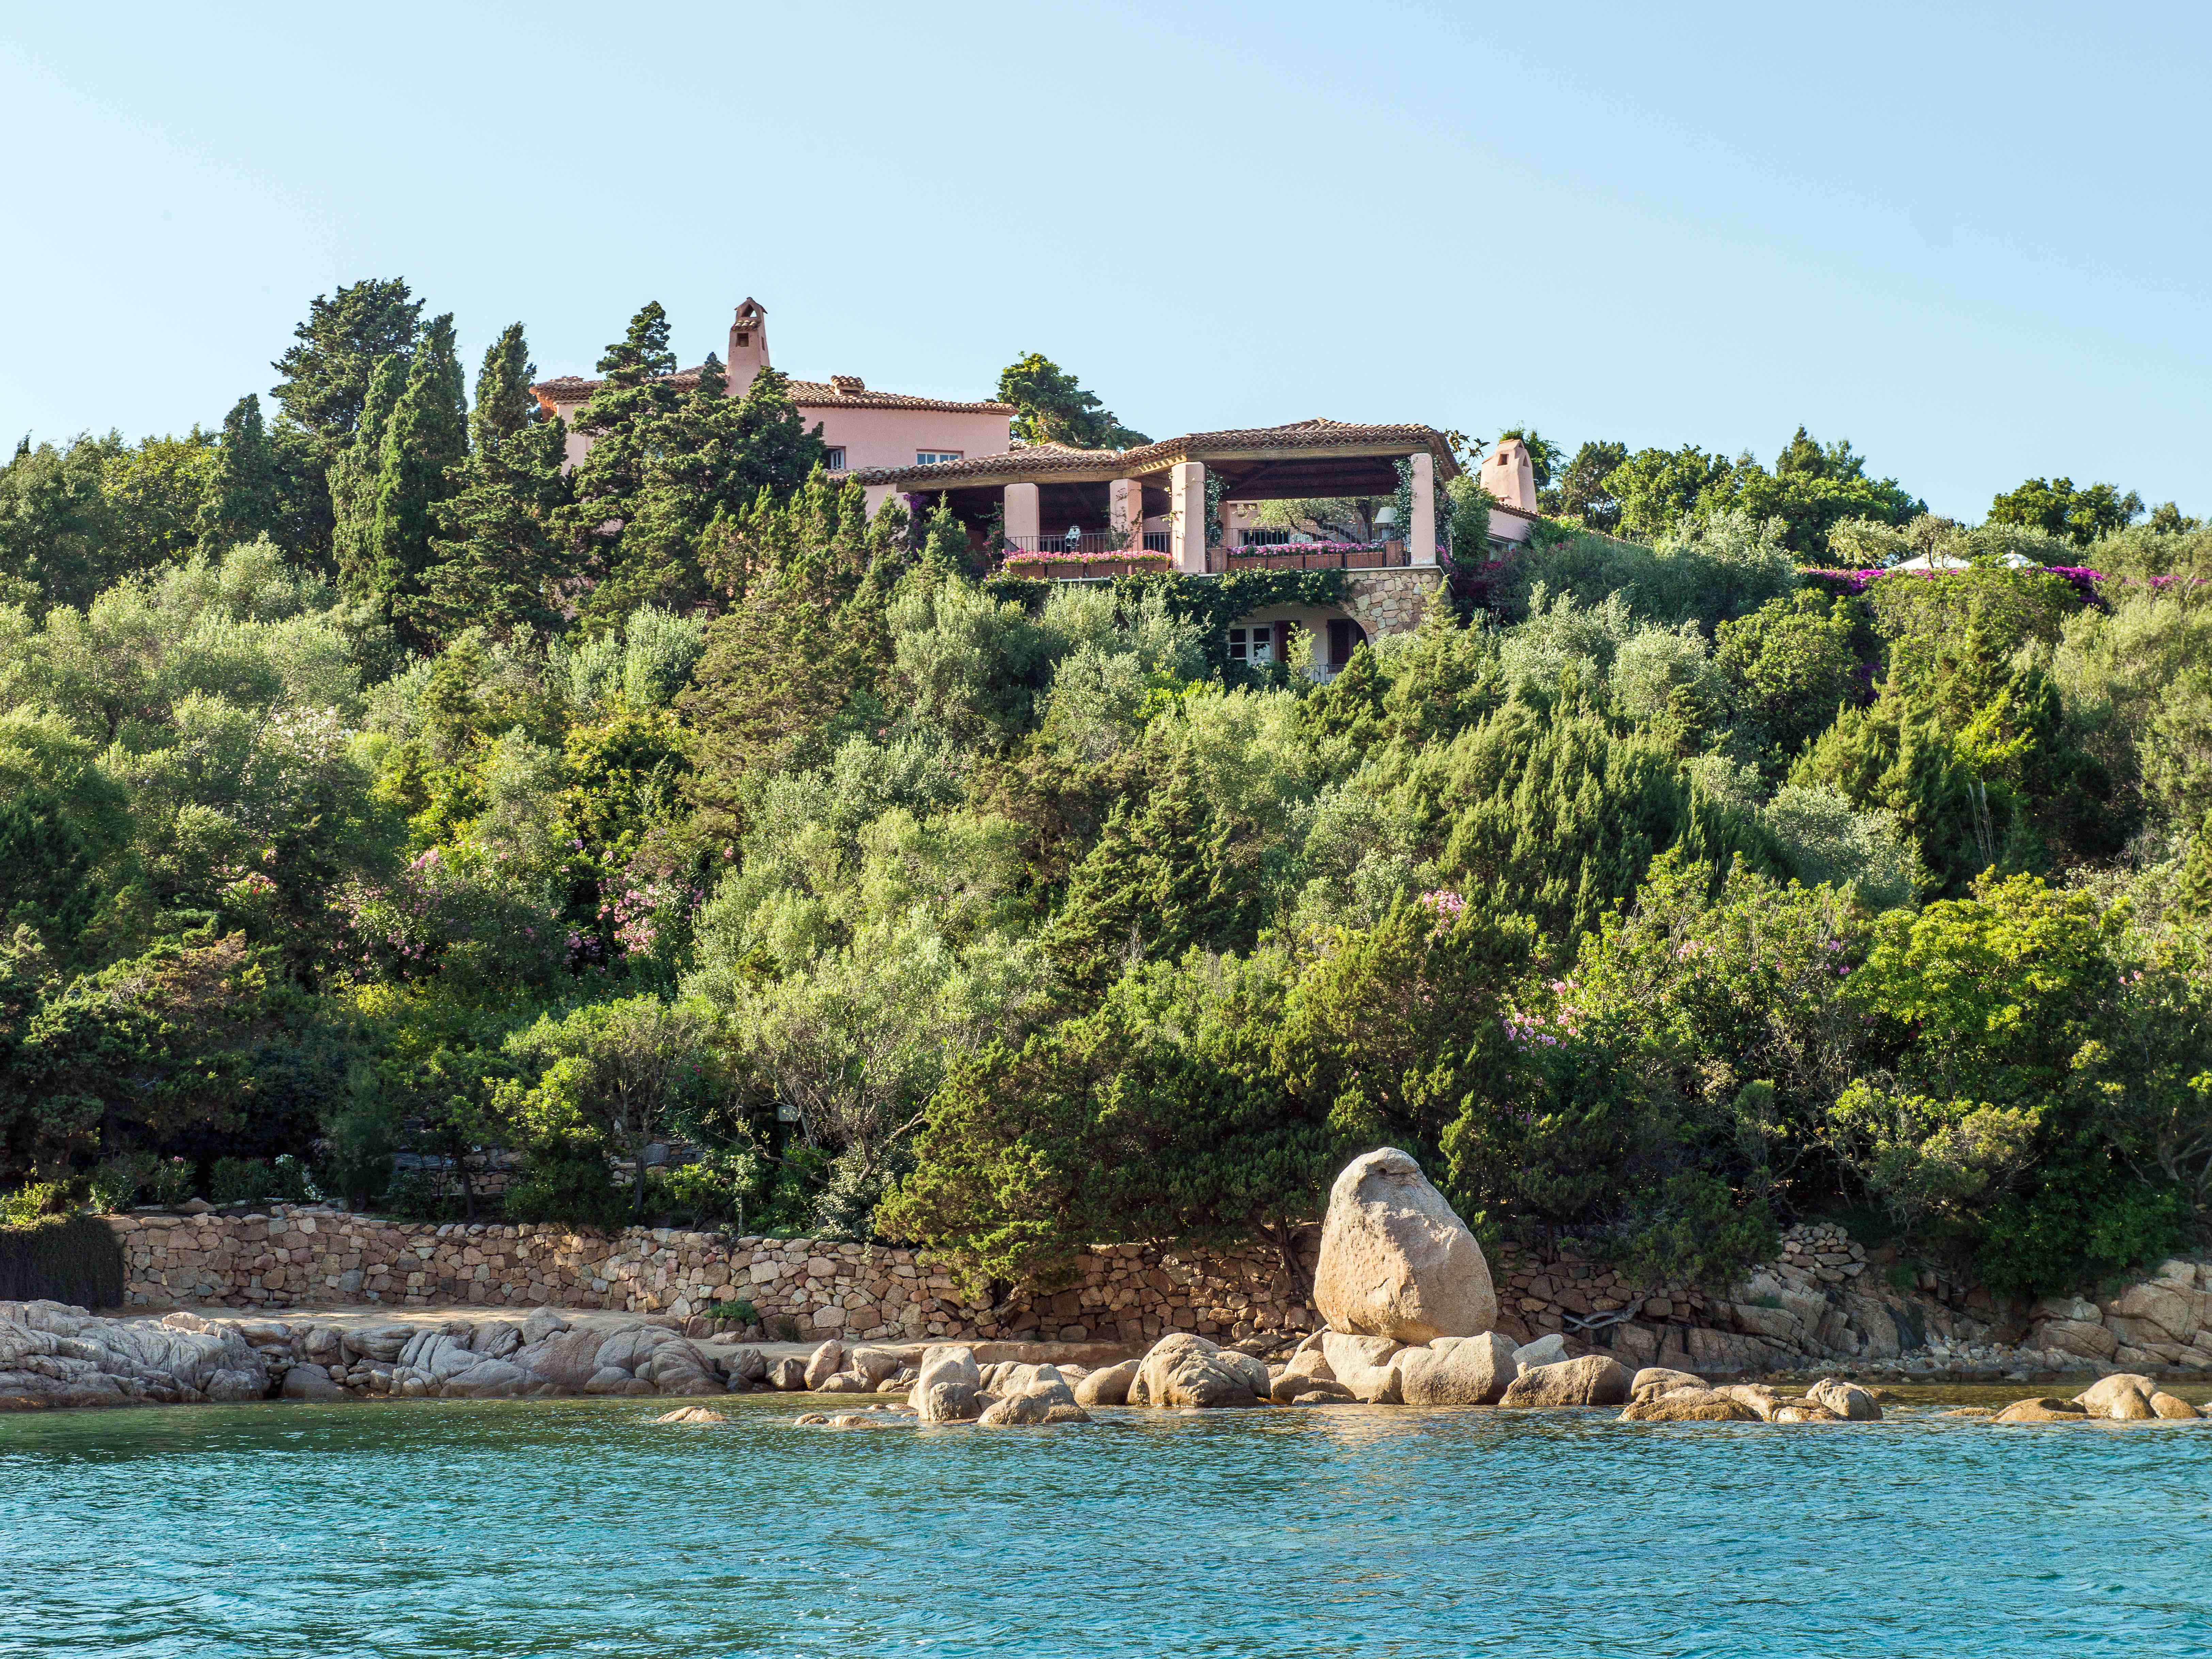 Villa Il Forte is listed with Sotheby's International Realty for an undisclosed price